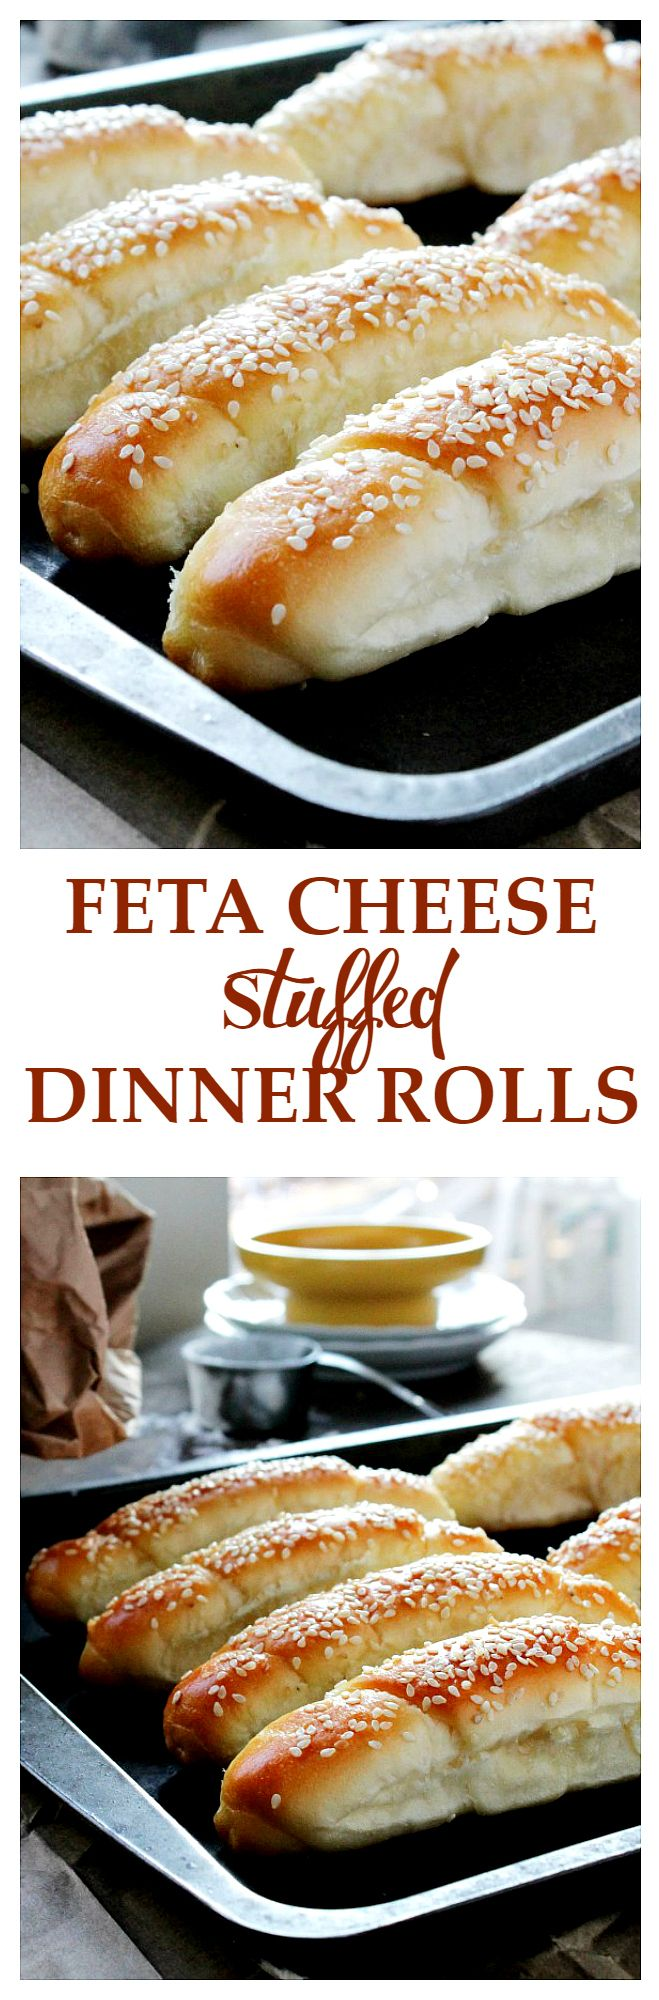 Feta Cheese Stuffed Dinner Rolls - Soft, tender, delicious dinner rolls stuffed with feta cheese. They are irresistible!!